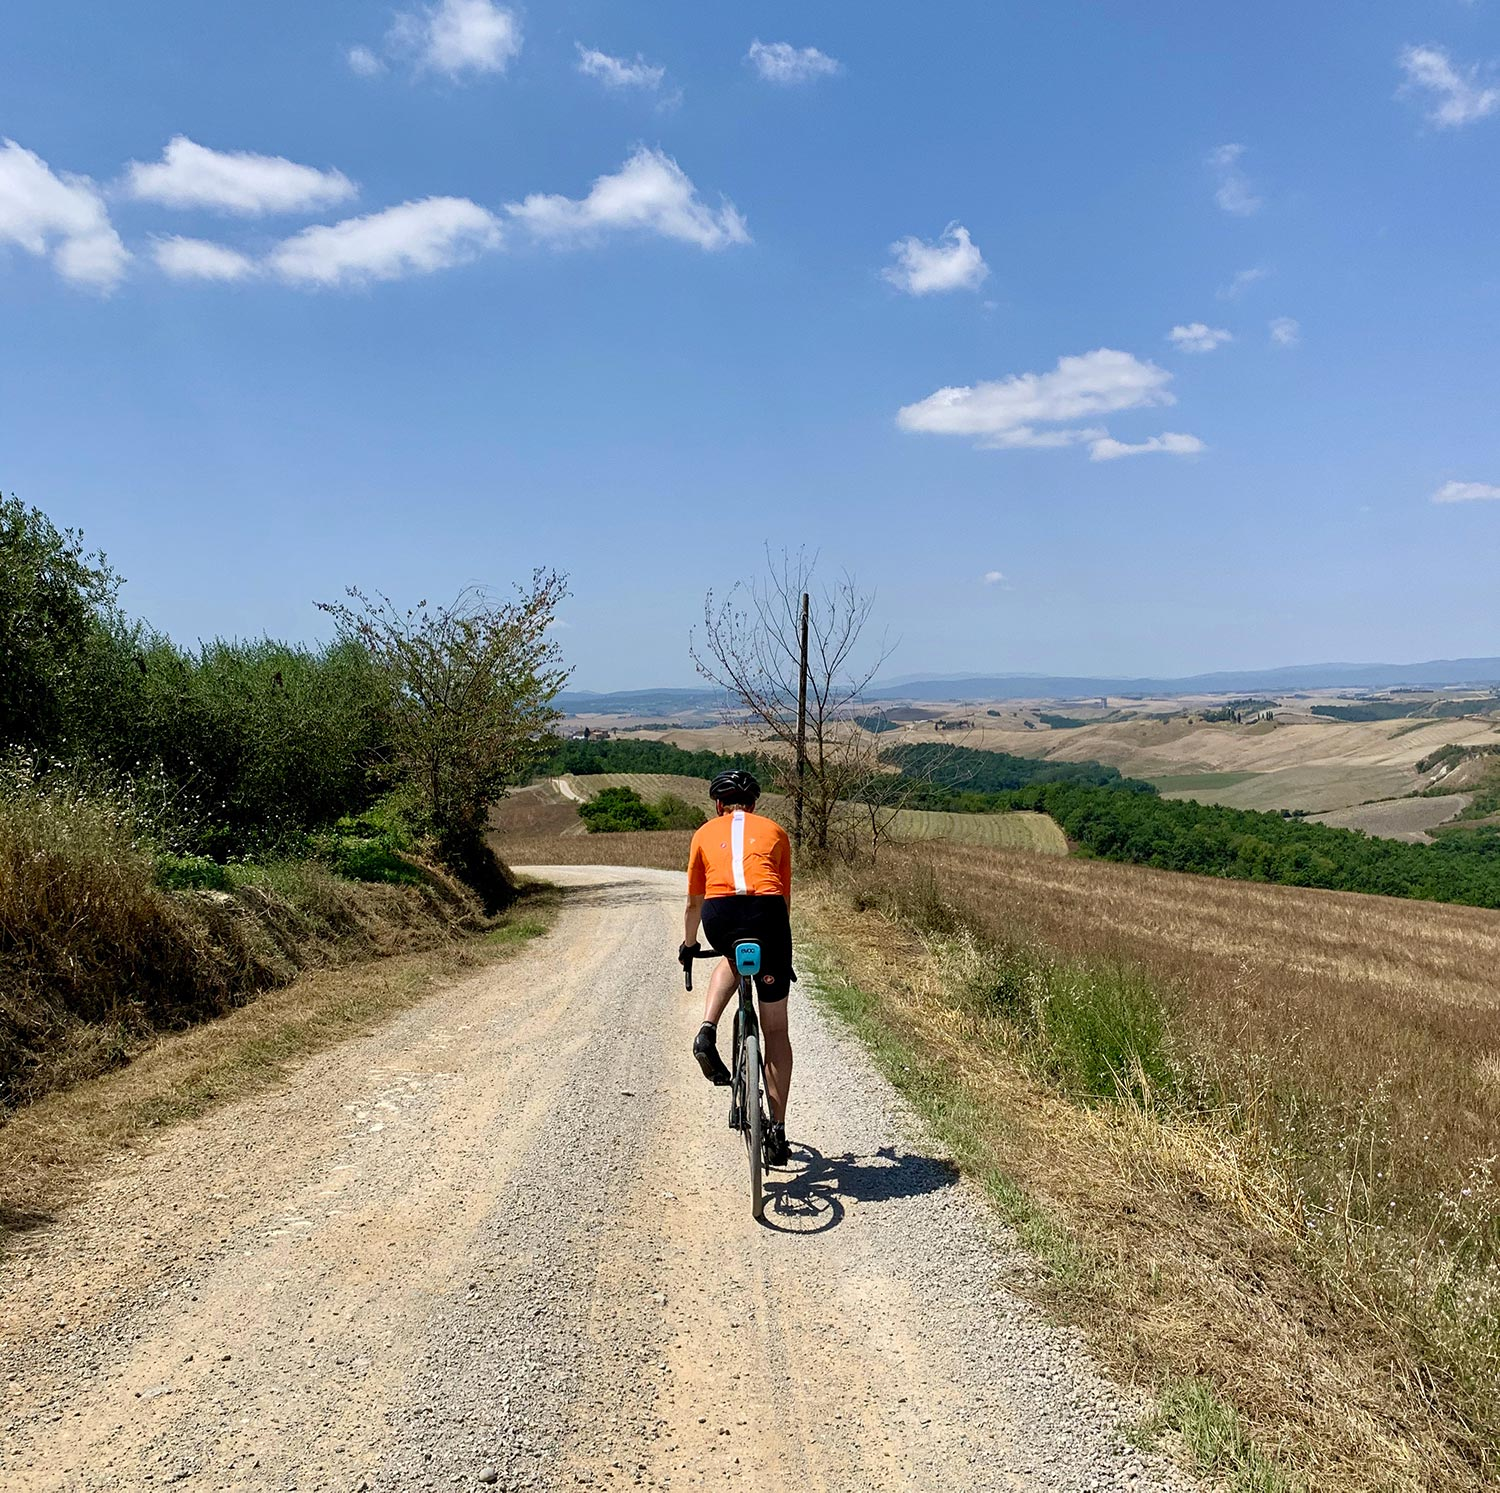 bike-tour-gravel-bike tuscany